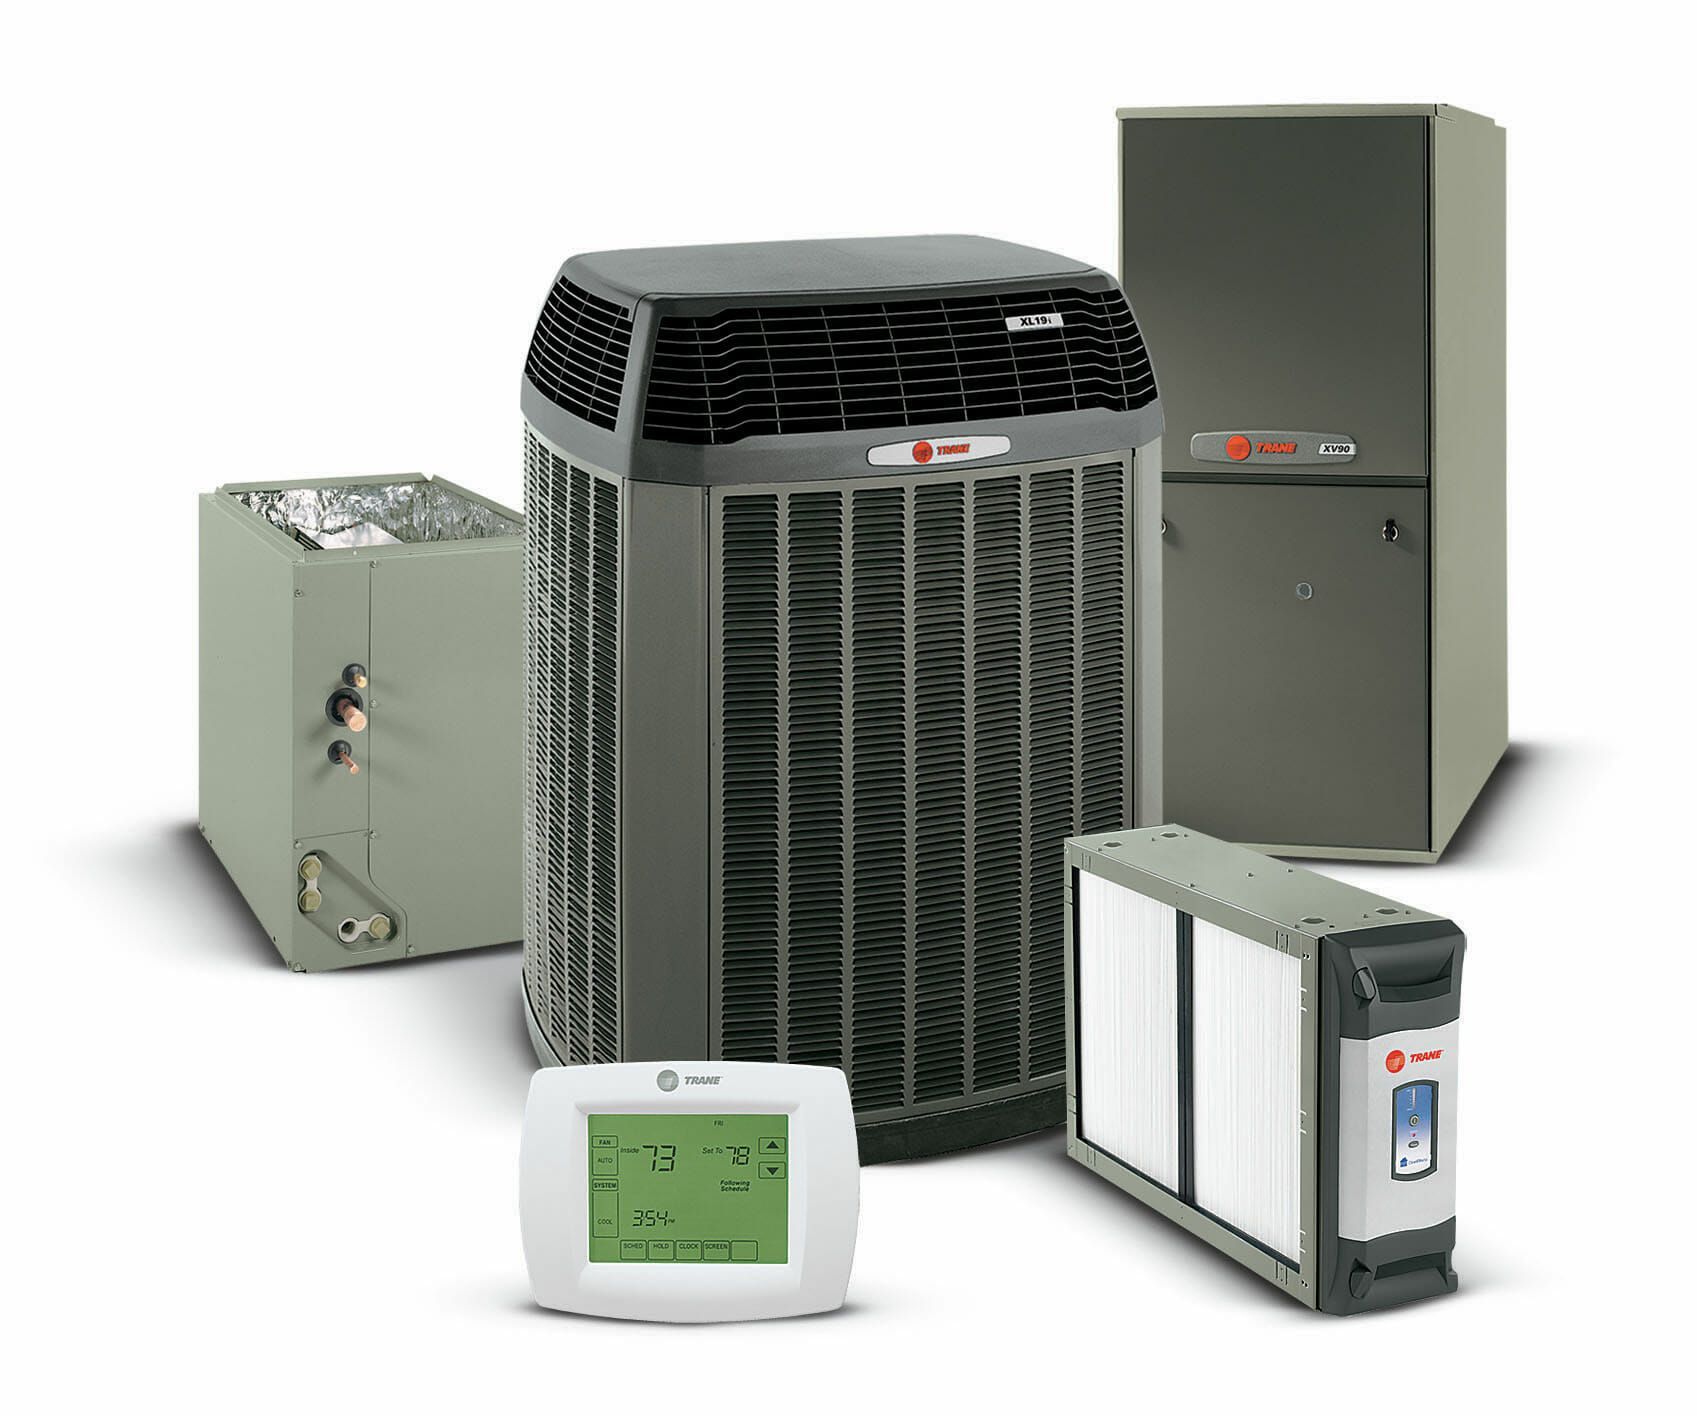 2020 Best Furnace Brands Top 10 Buying Guide Hvac